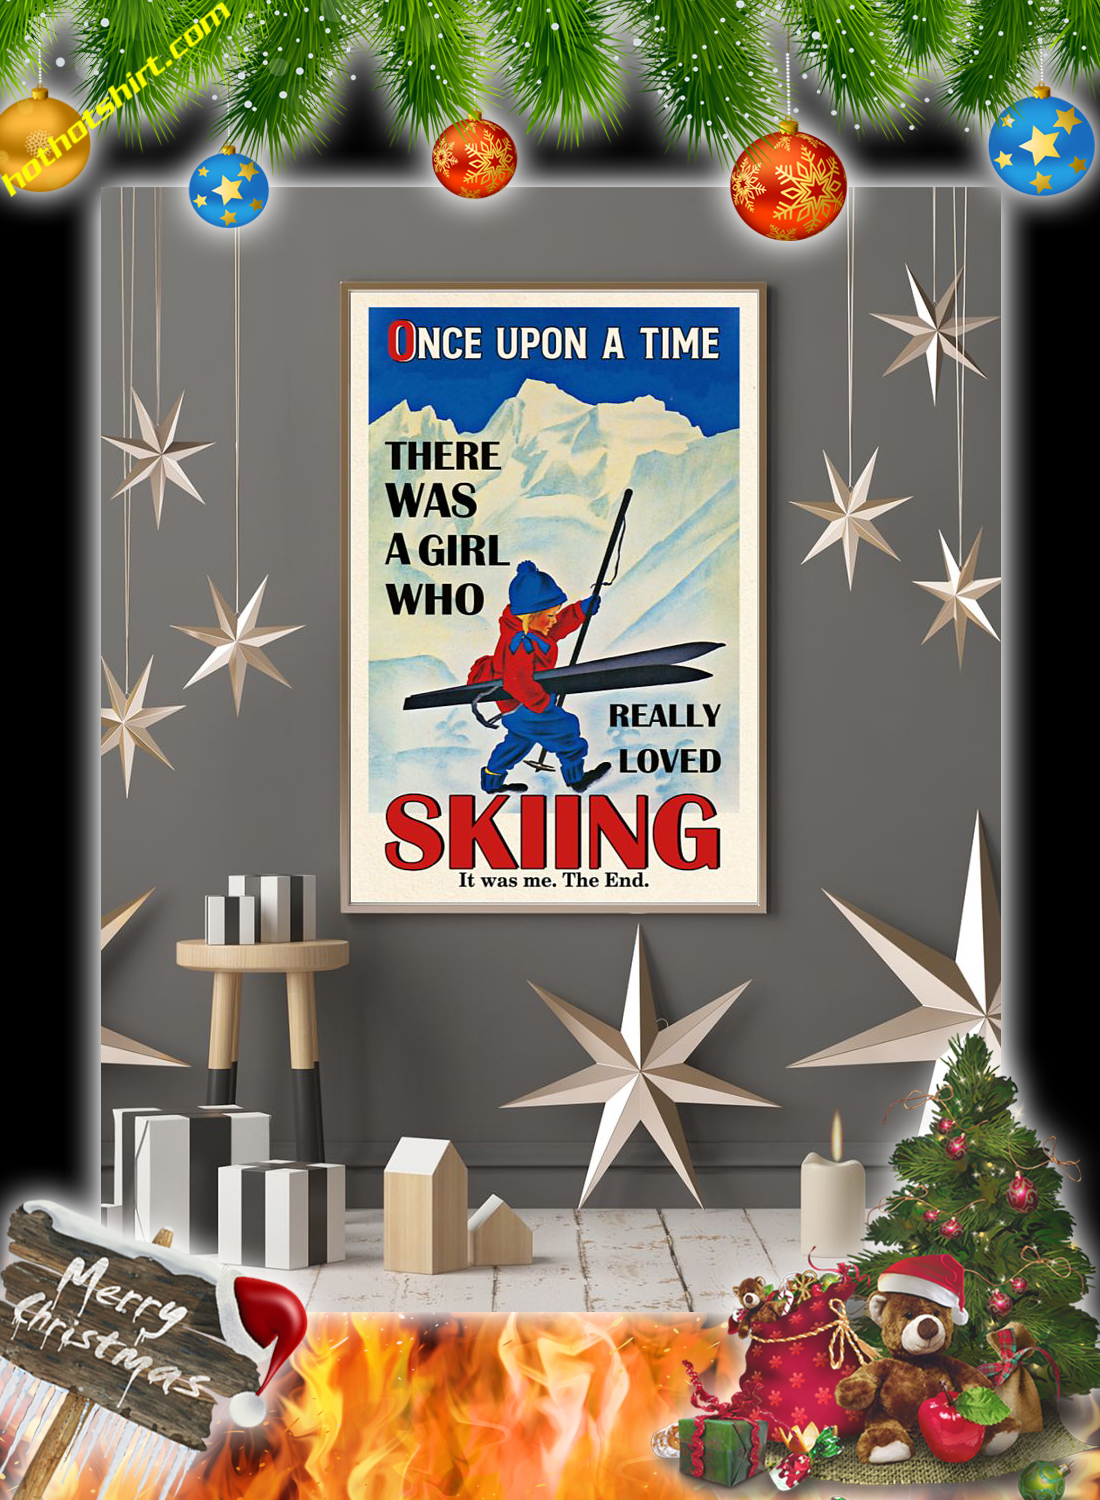 Once upon a time there was a girl who really loved skiing poster 3